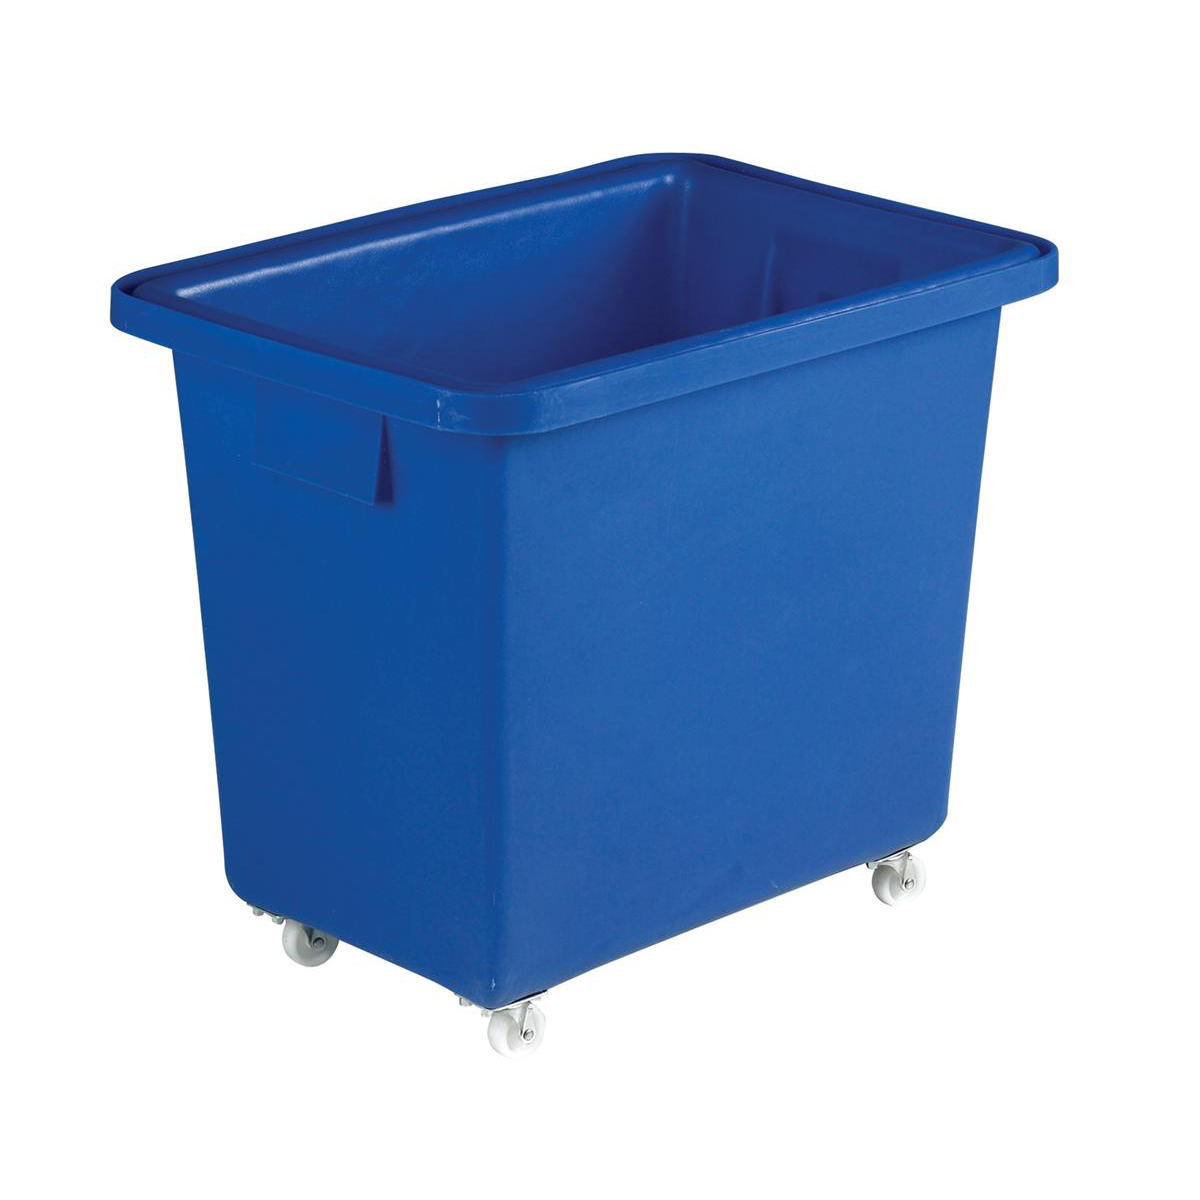 Recycling Bins Bottle Skip Four Castors Medium Density Polyethylene 610x405x560mm Royal Blue